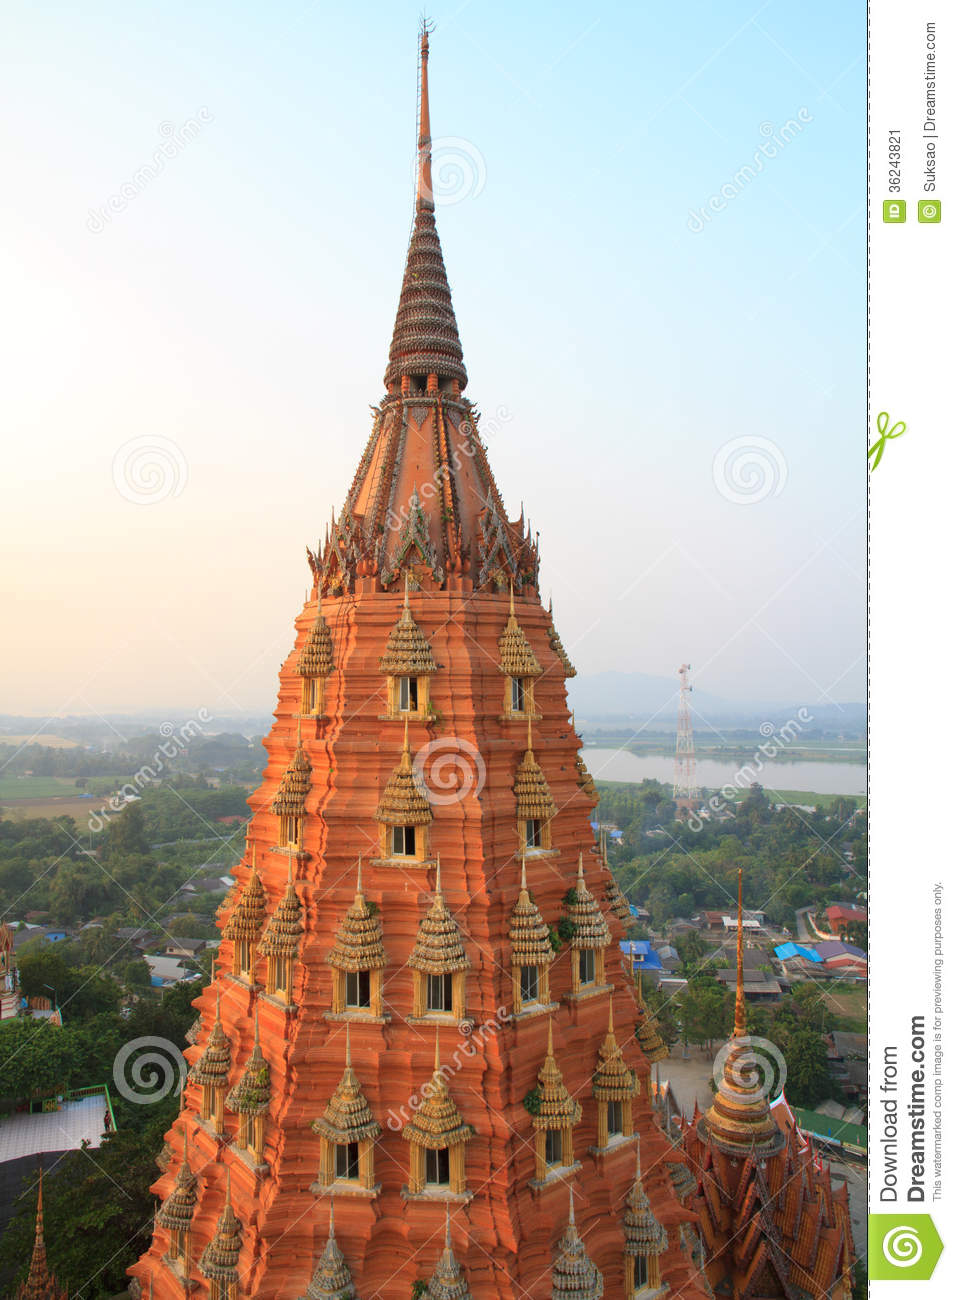 Uthai Thani Thailand  city pictures gallery : Golden pagoda in temple, Uthai Thani Province, Thailand.